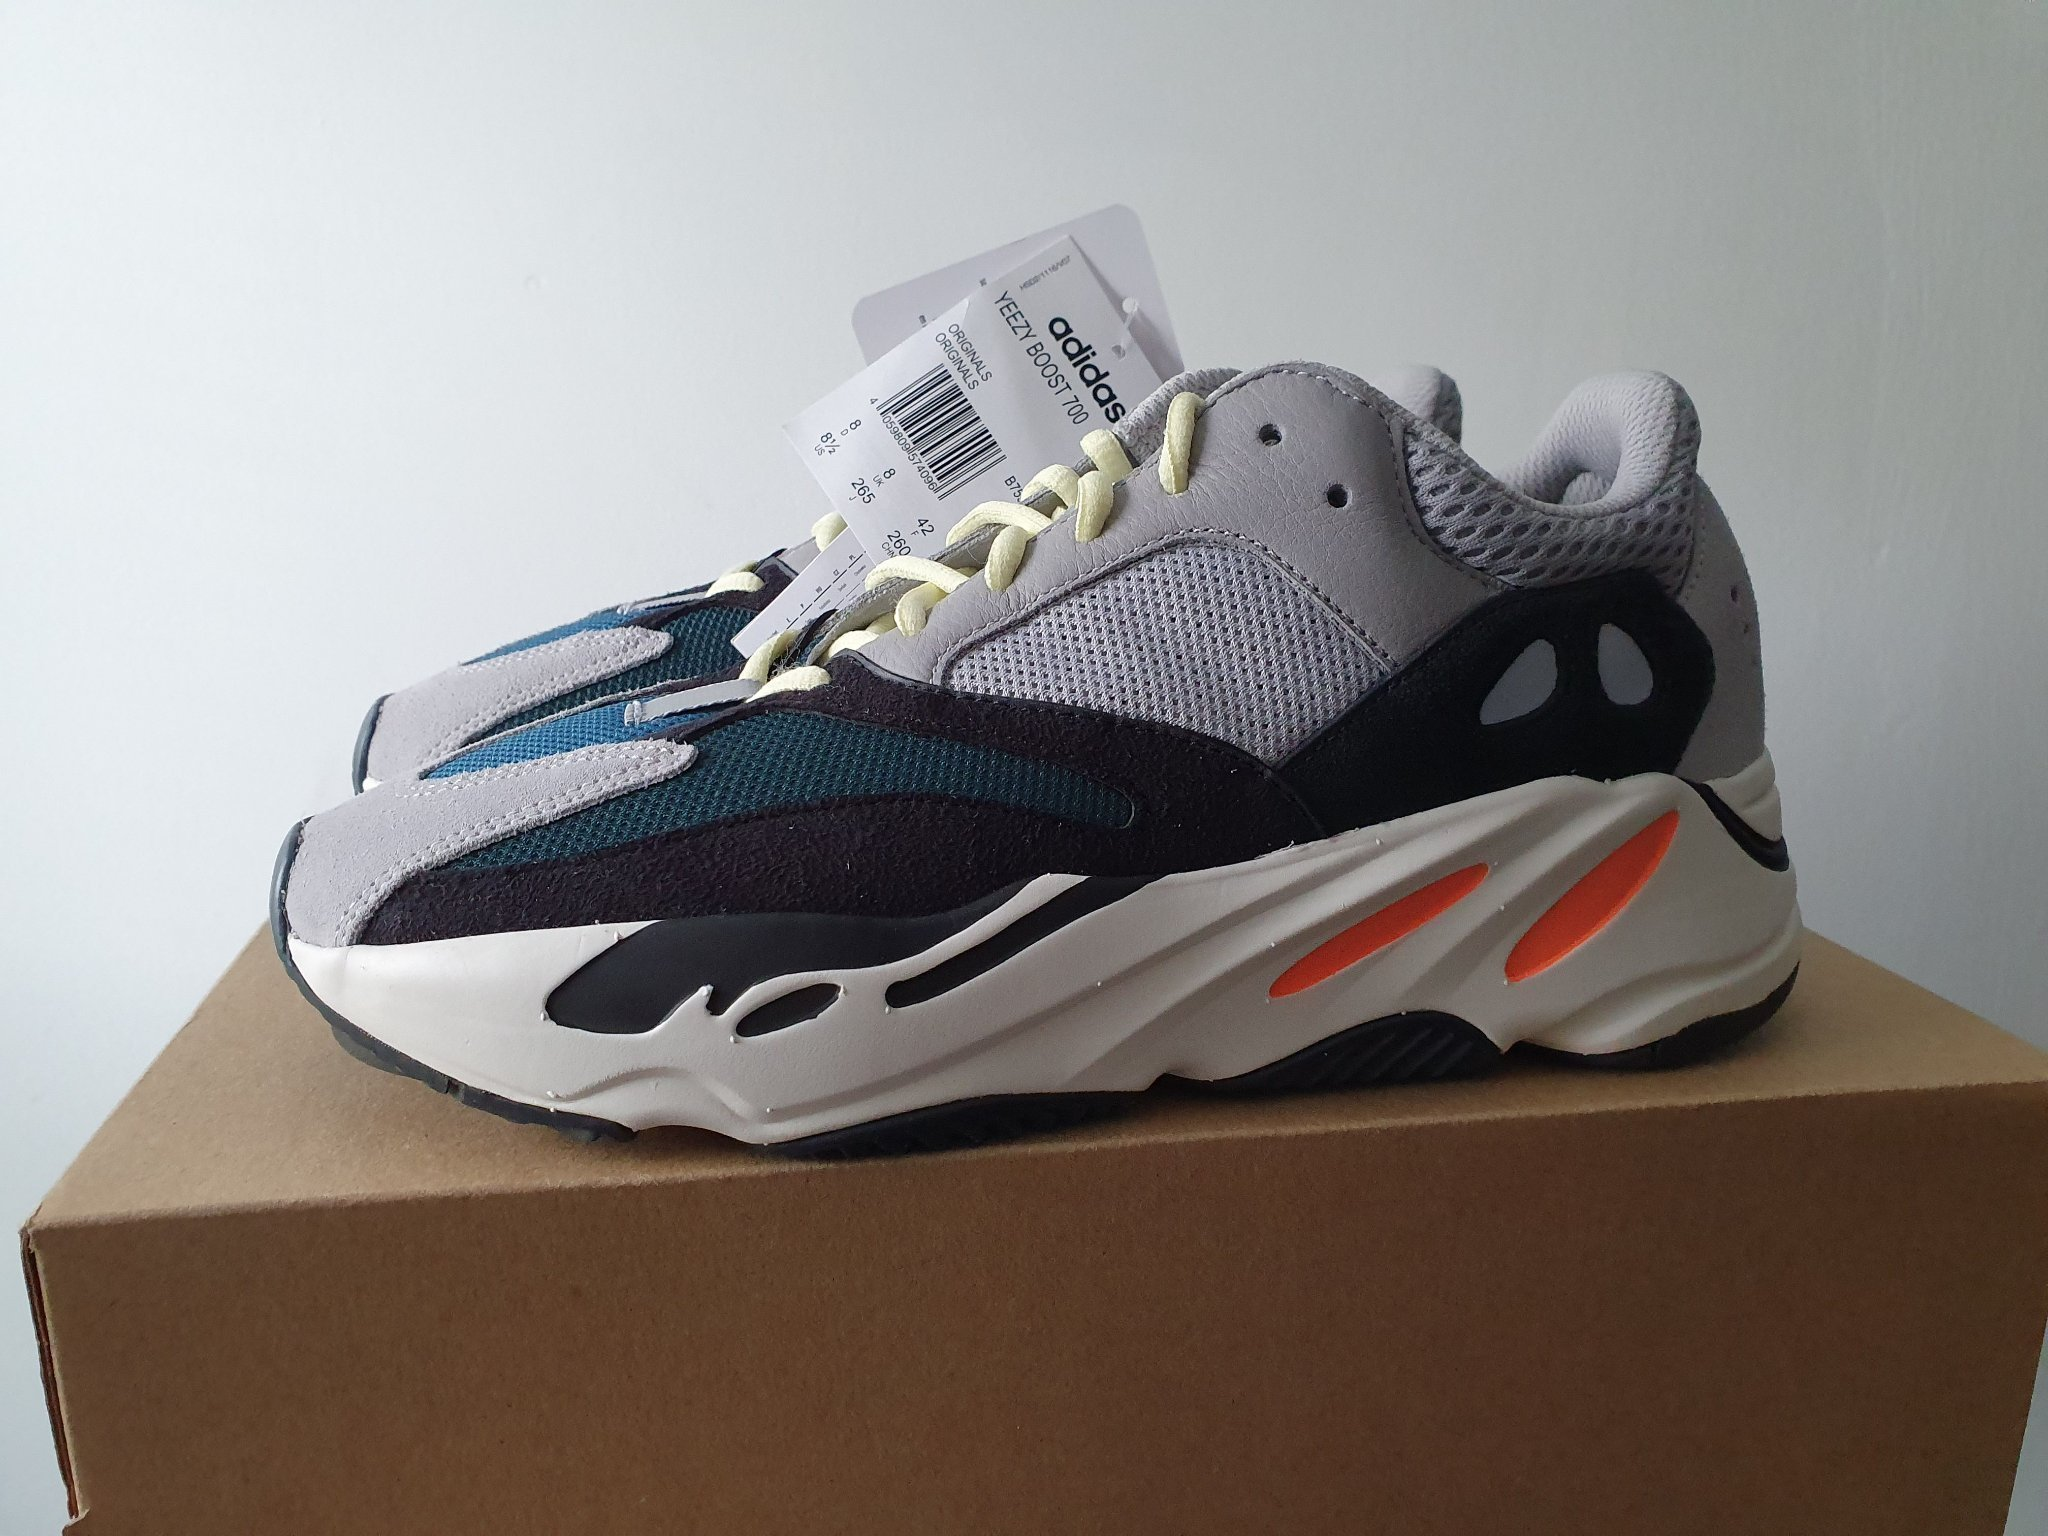 Buy original Adidas Yeezy Boost 700 Wave Runner sneakers